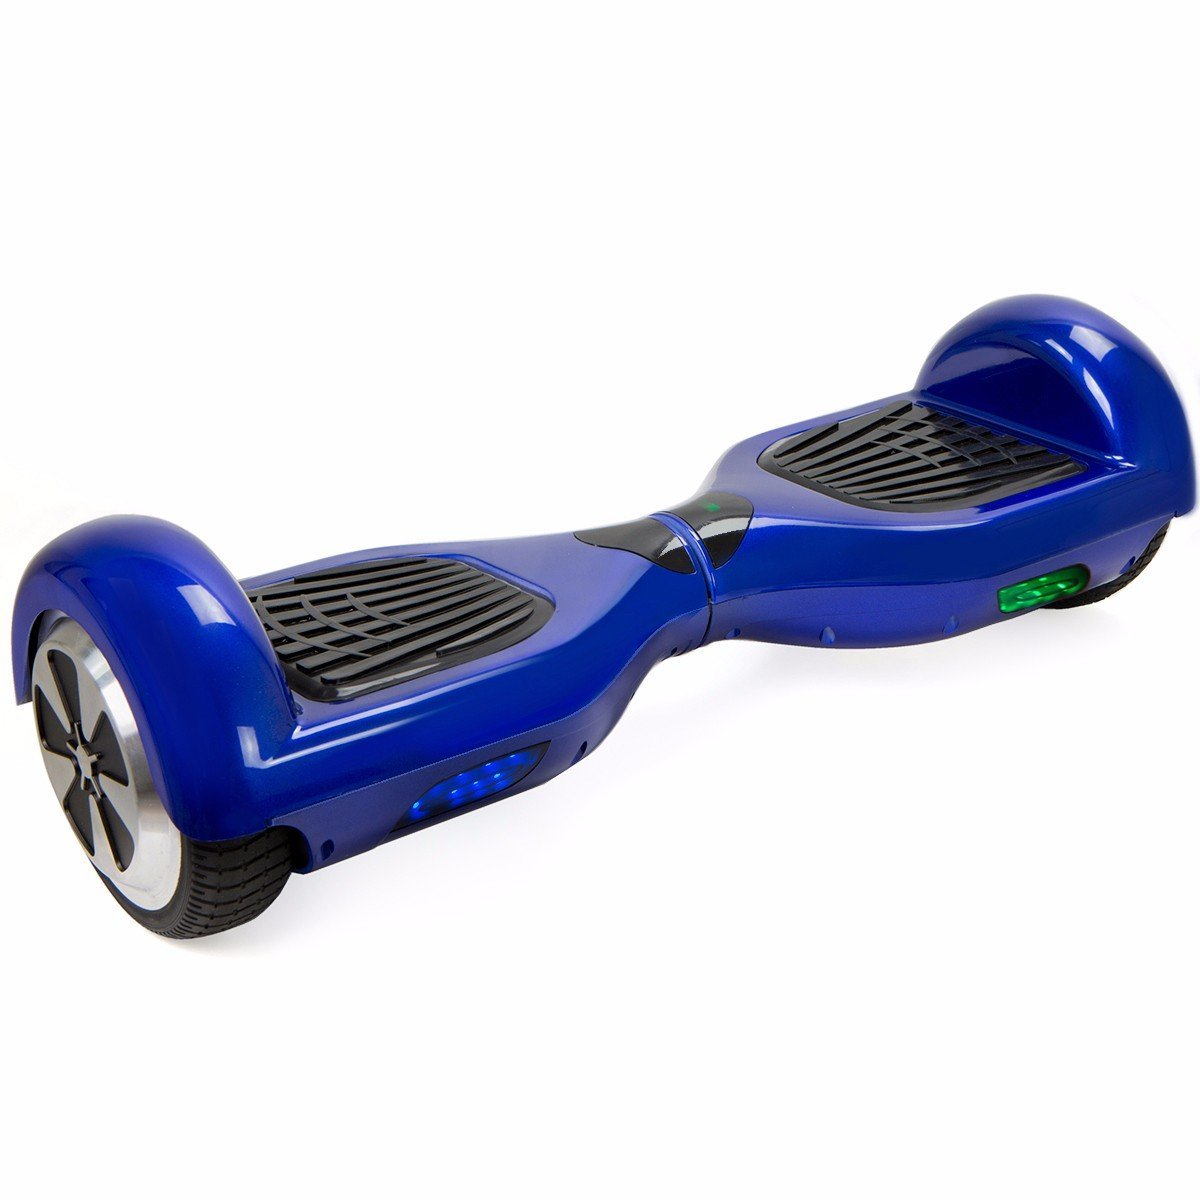 Xtremepower US Self-Balancing Scooter Electric Hoverboard